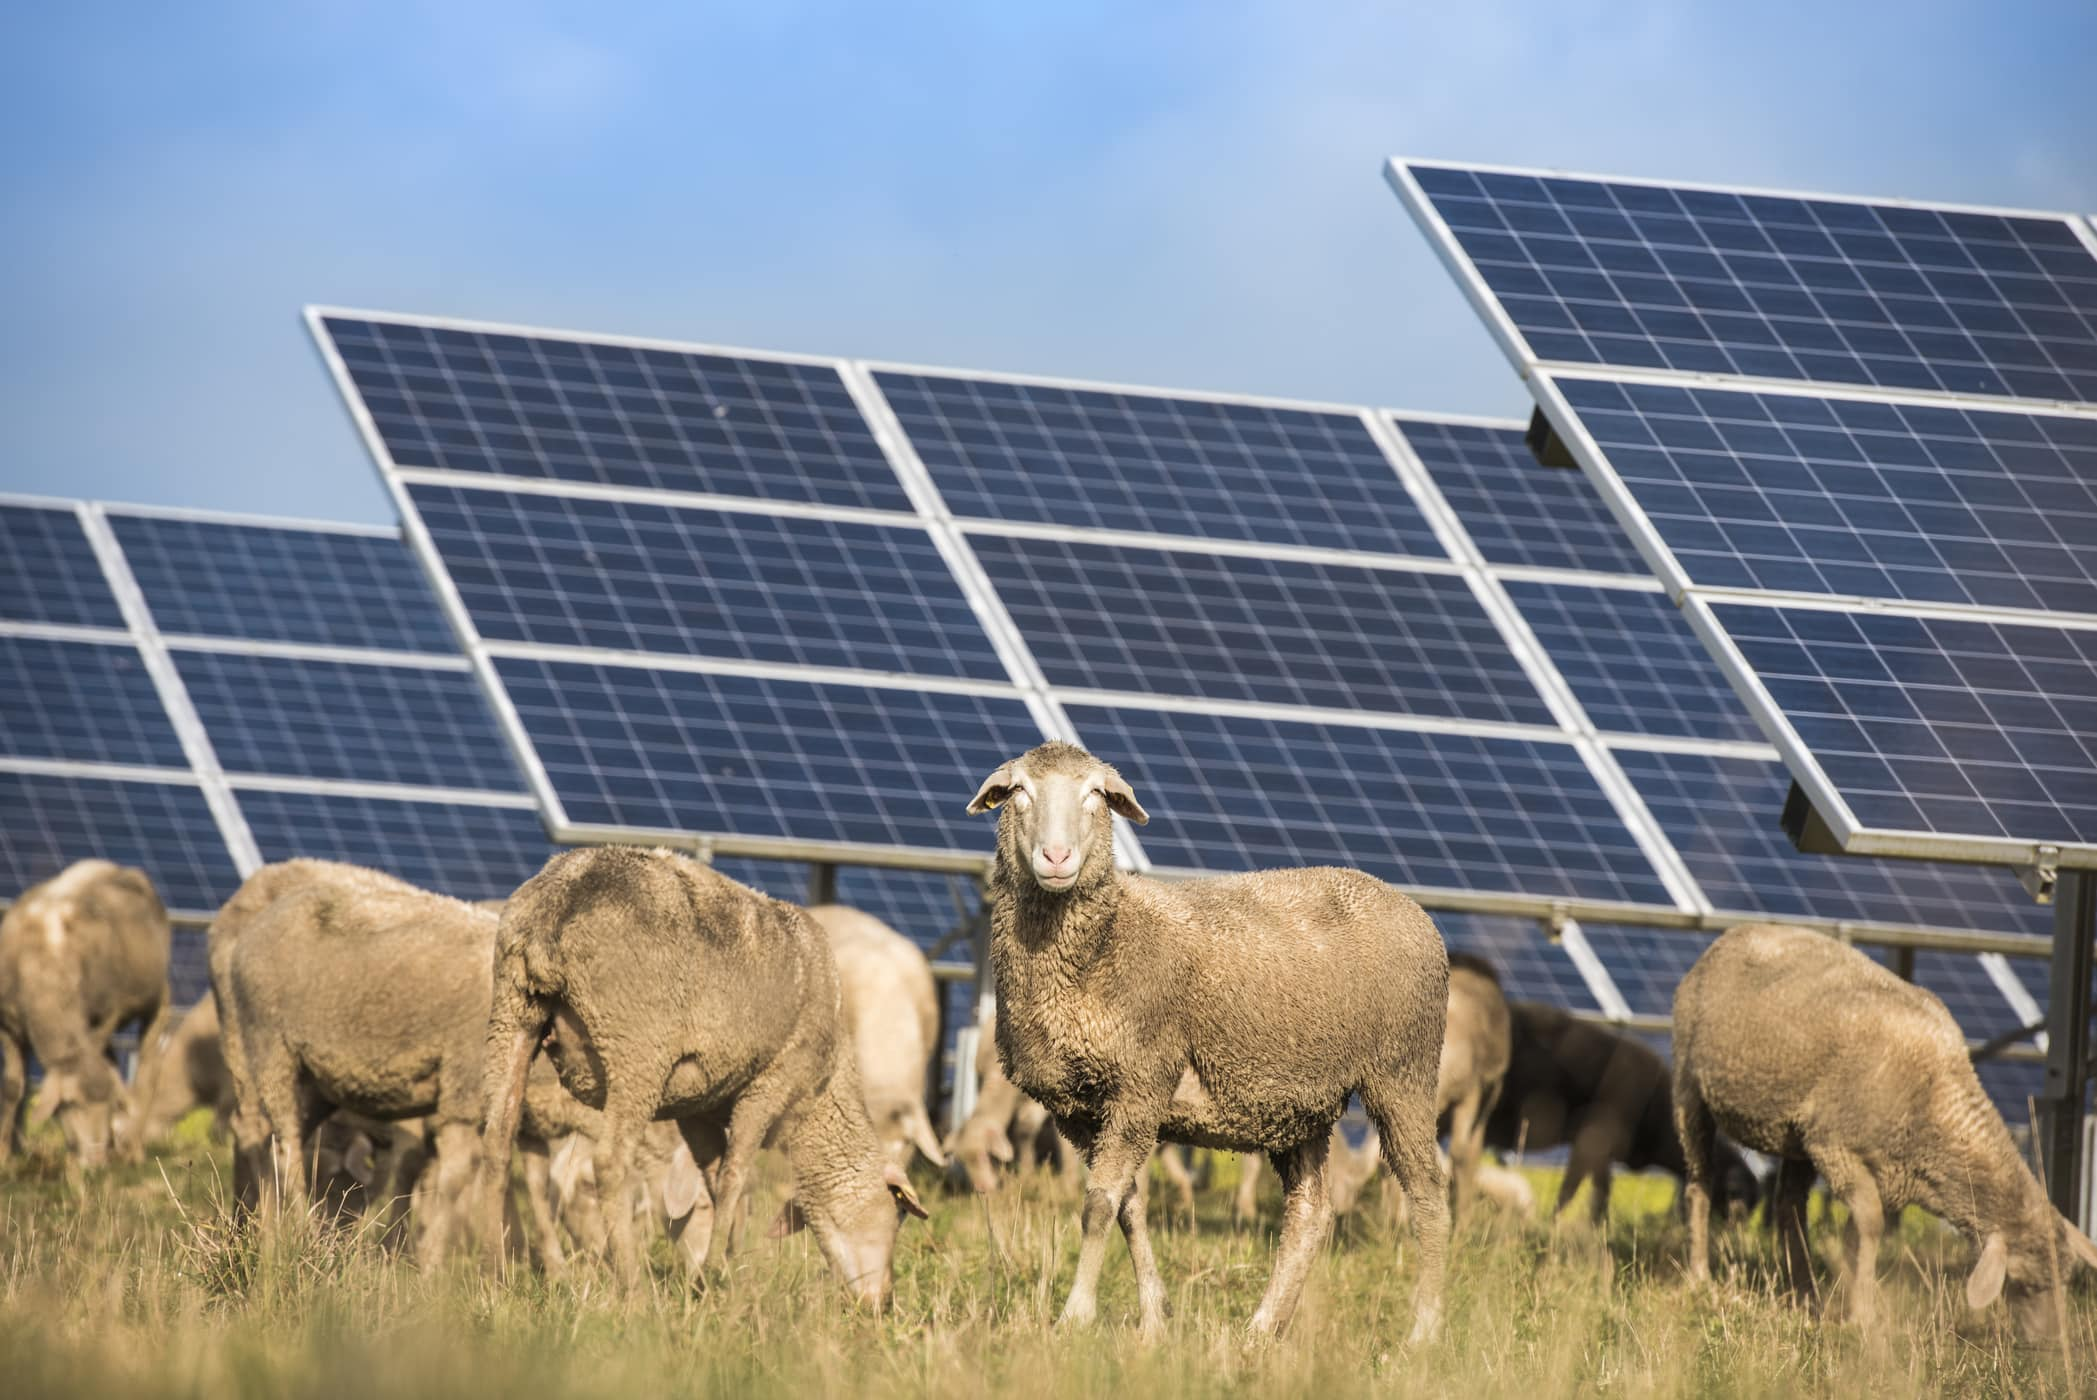 Sheep grazing near solar panel